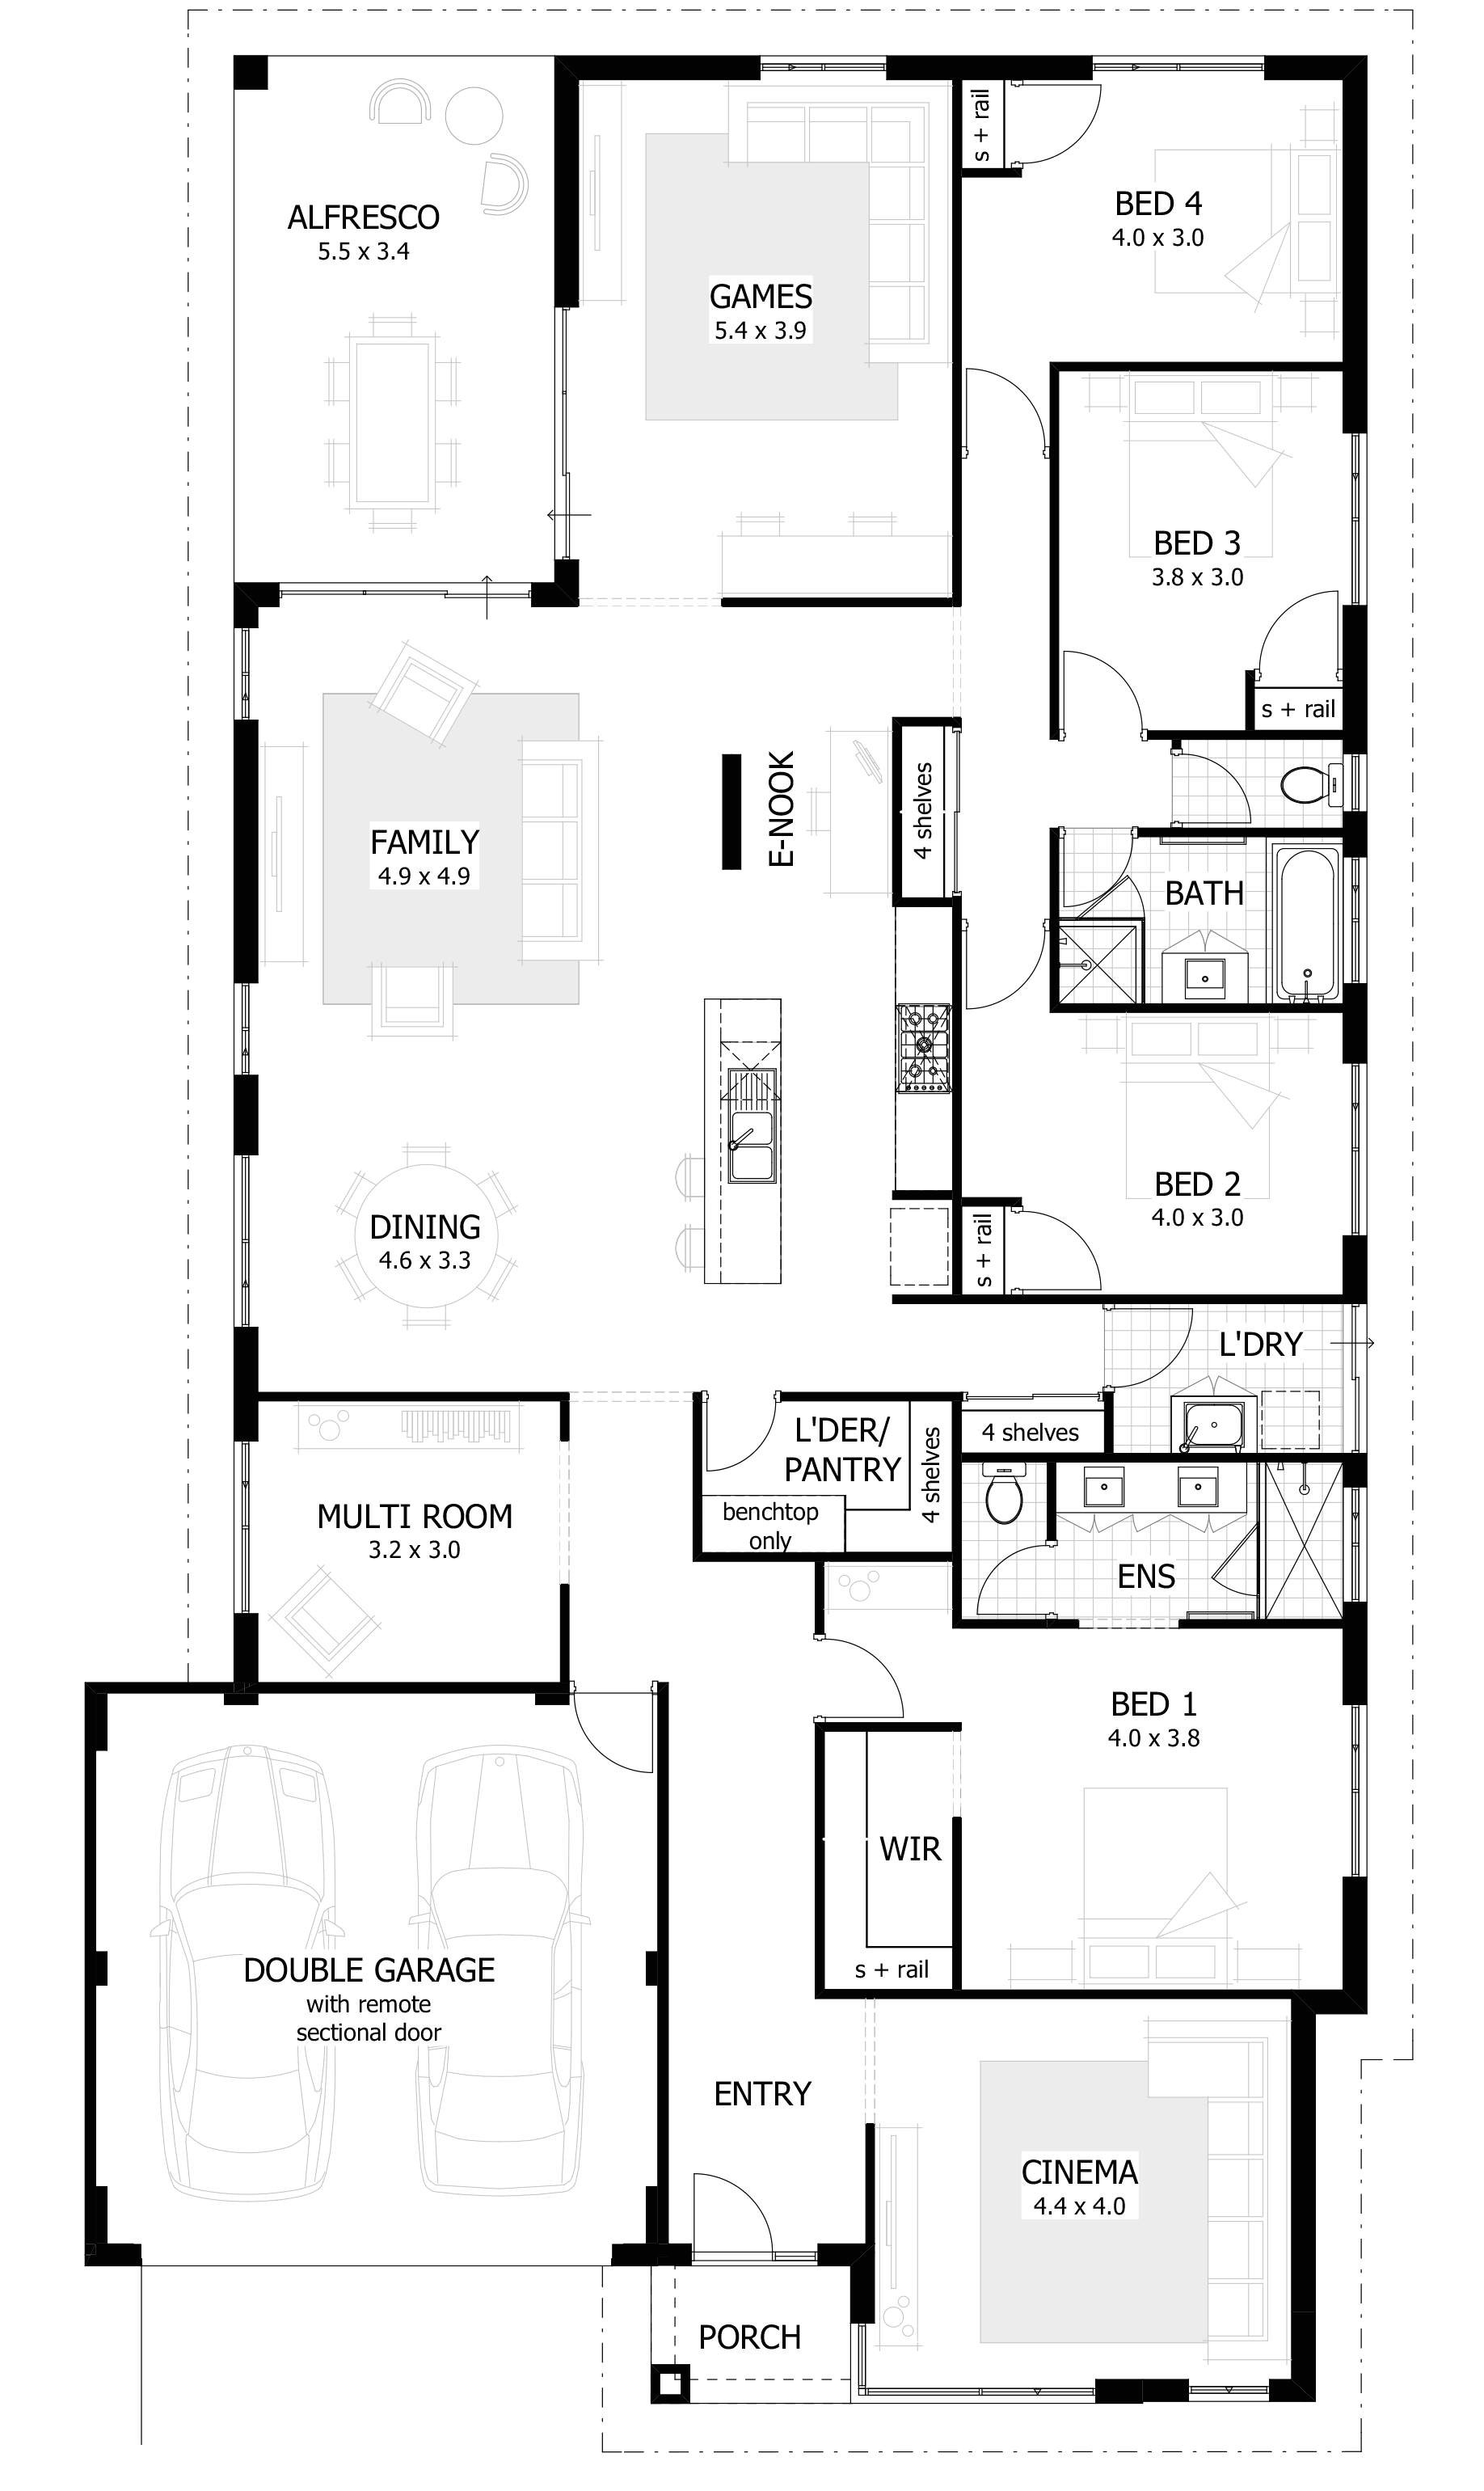 large house plans 7 bedrooms australia best of 2 story 8 bedroom house plans unique e story house plans for seniors